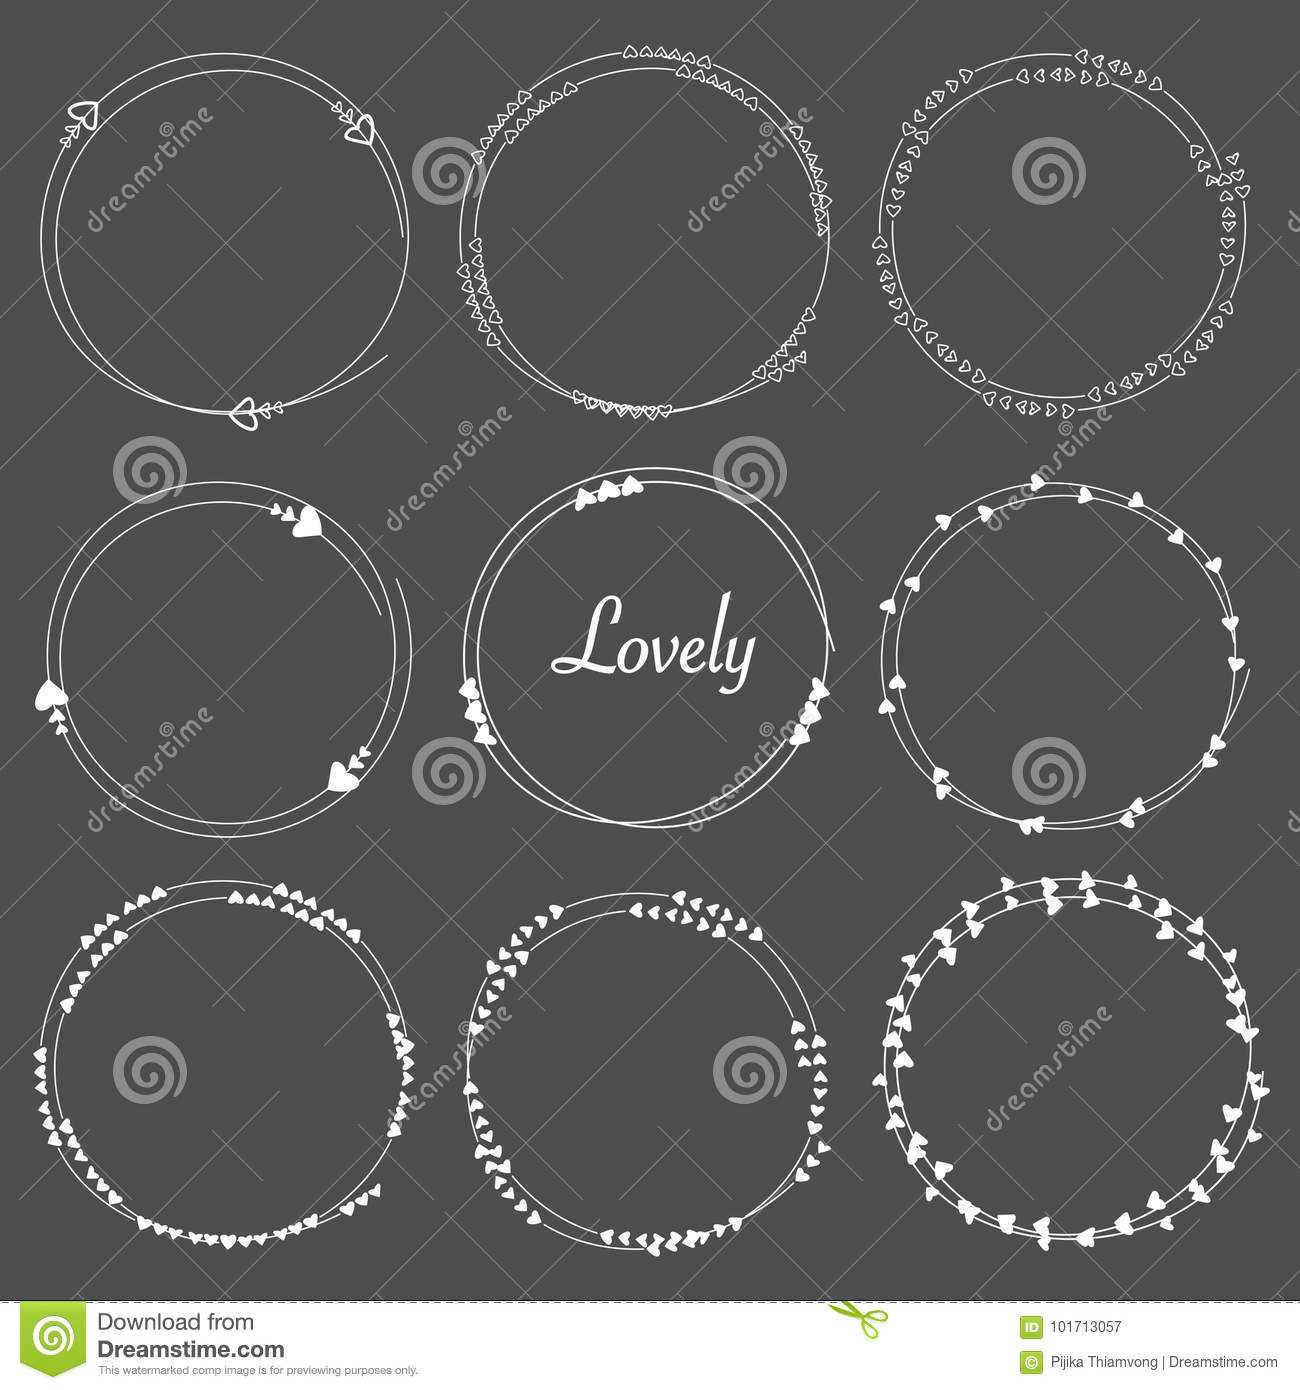 Vector Set Of Heart Dividers Round Frames For Decoration.